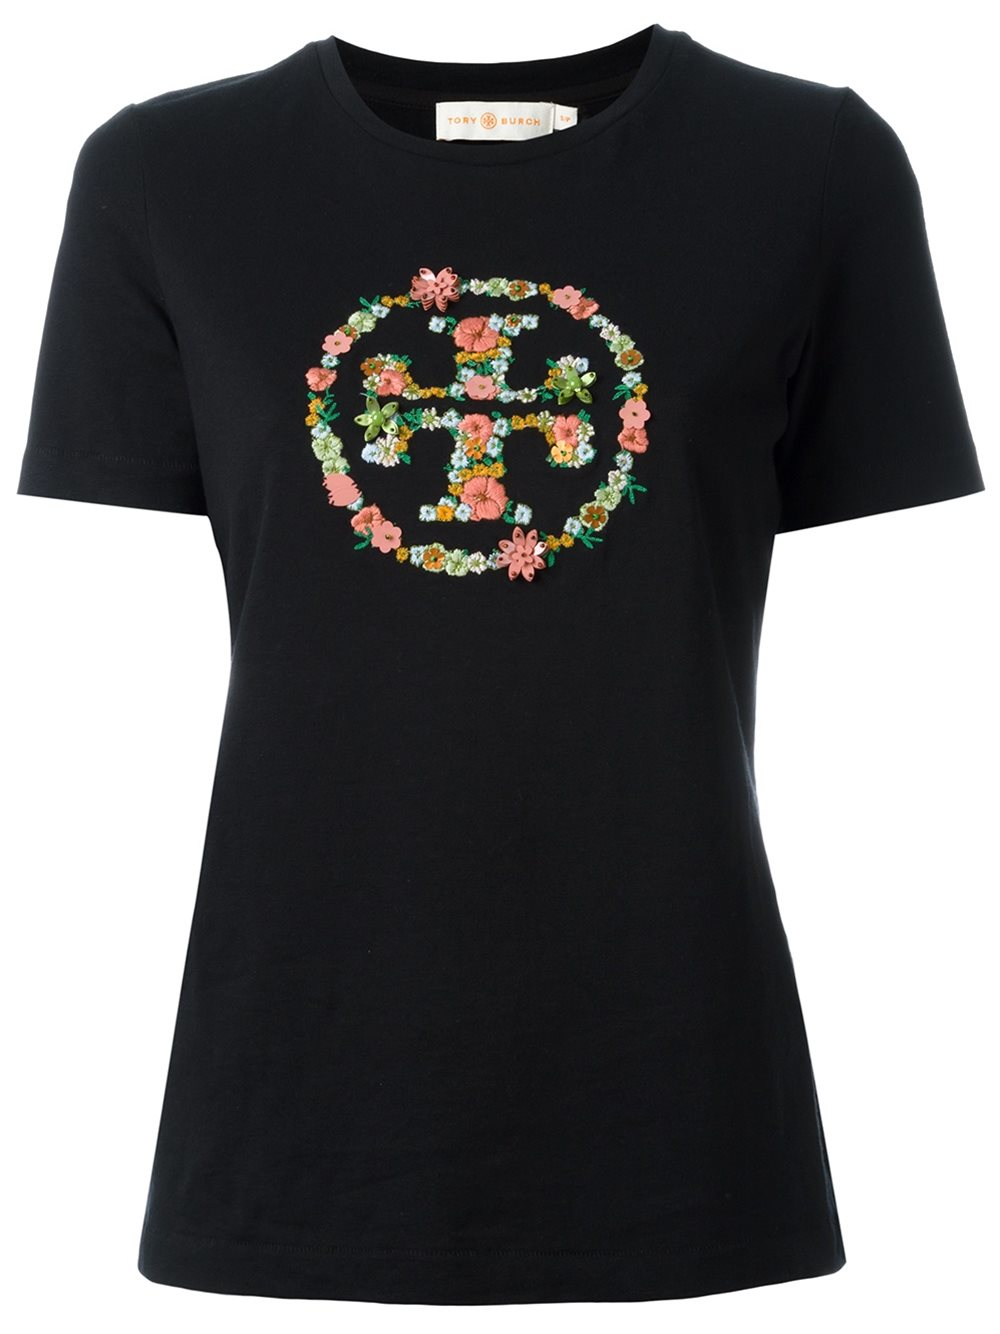 Tory burch embroidered logo t shirt in black lyst for T shirt with embroidered logo